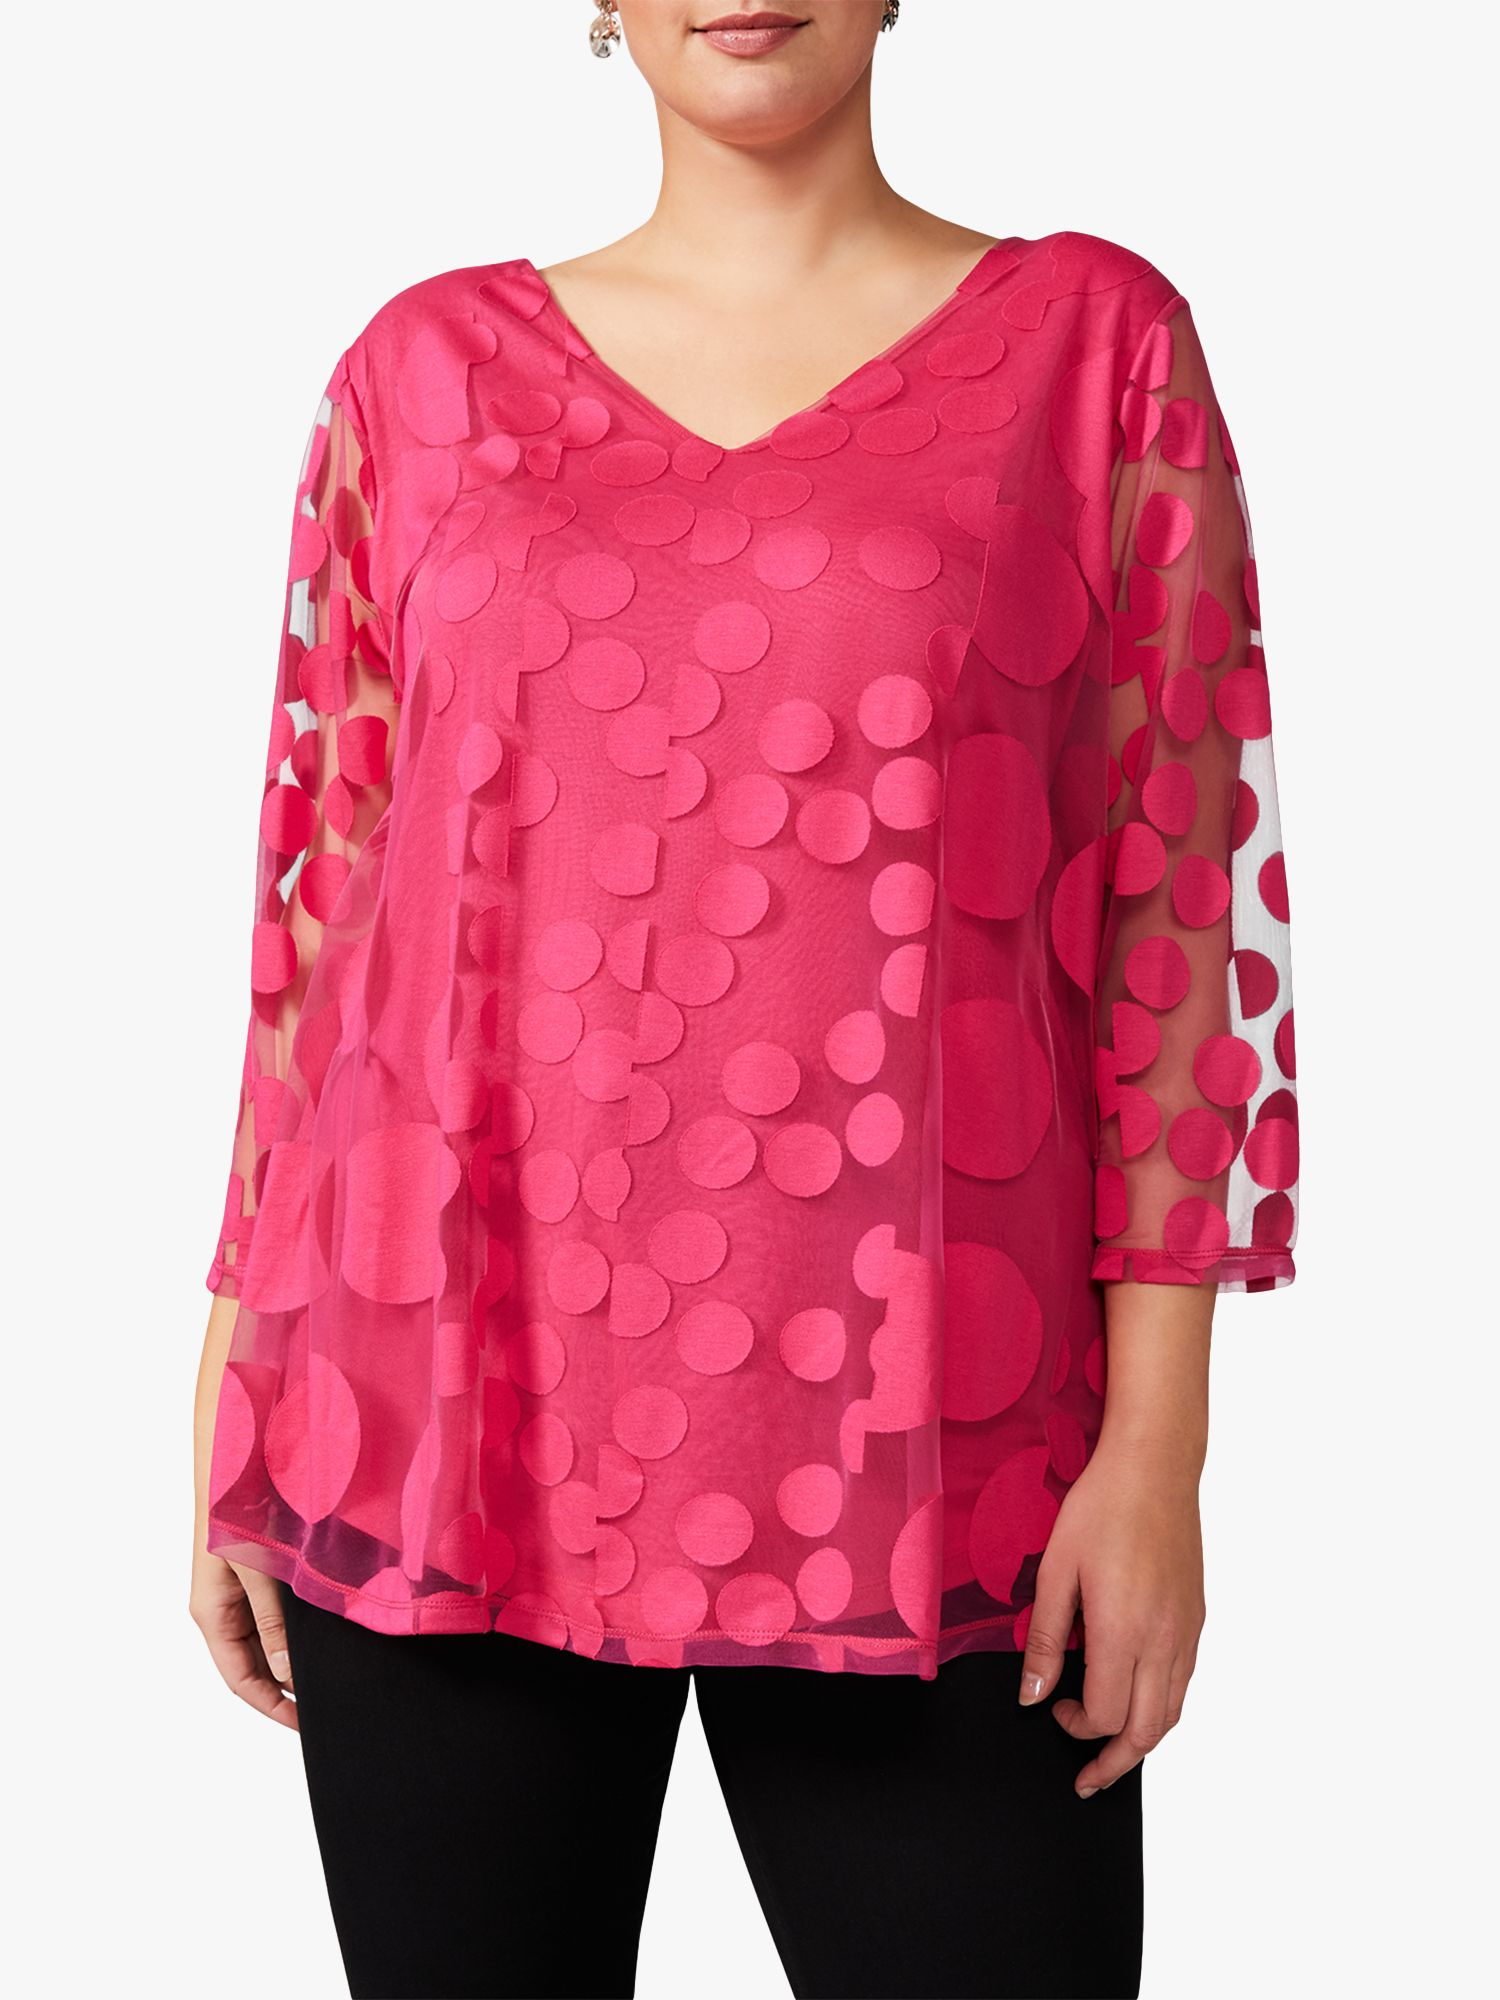 Studio 8 Studio 8 Ashanti Spot Burnout Top, Hot Pink